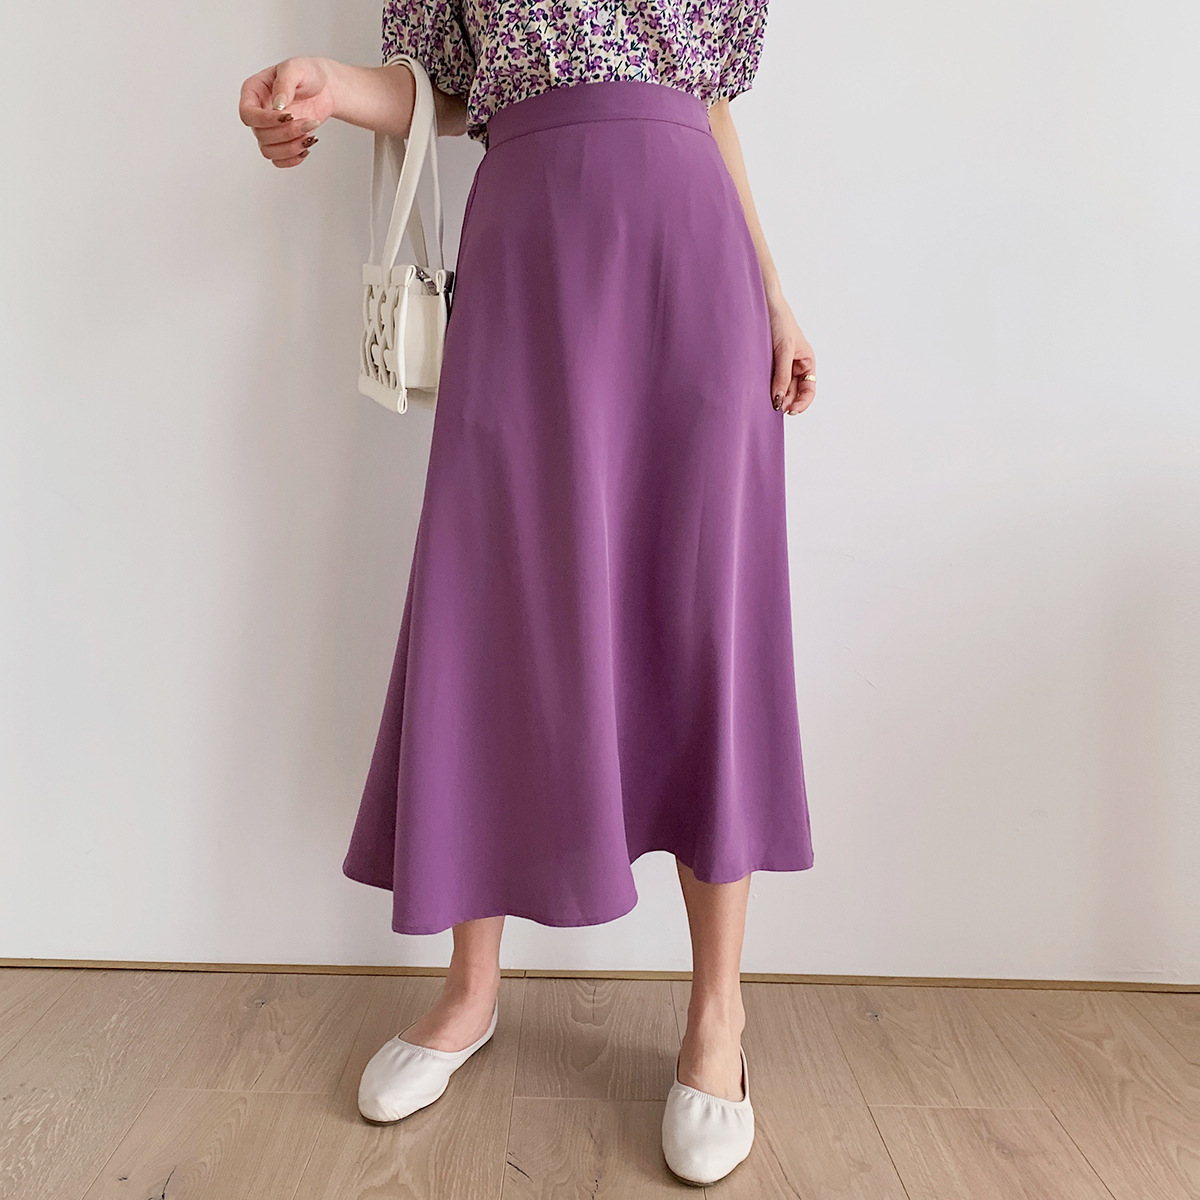 Sherhure 2020 Women High Waist Back Stretch Women Long Skirt A-Line Pure Color Faldas Jupe Femme Saia Women Summer Skirts